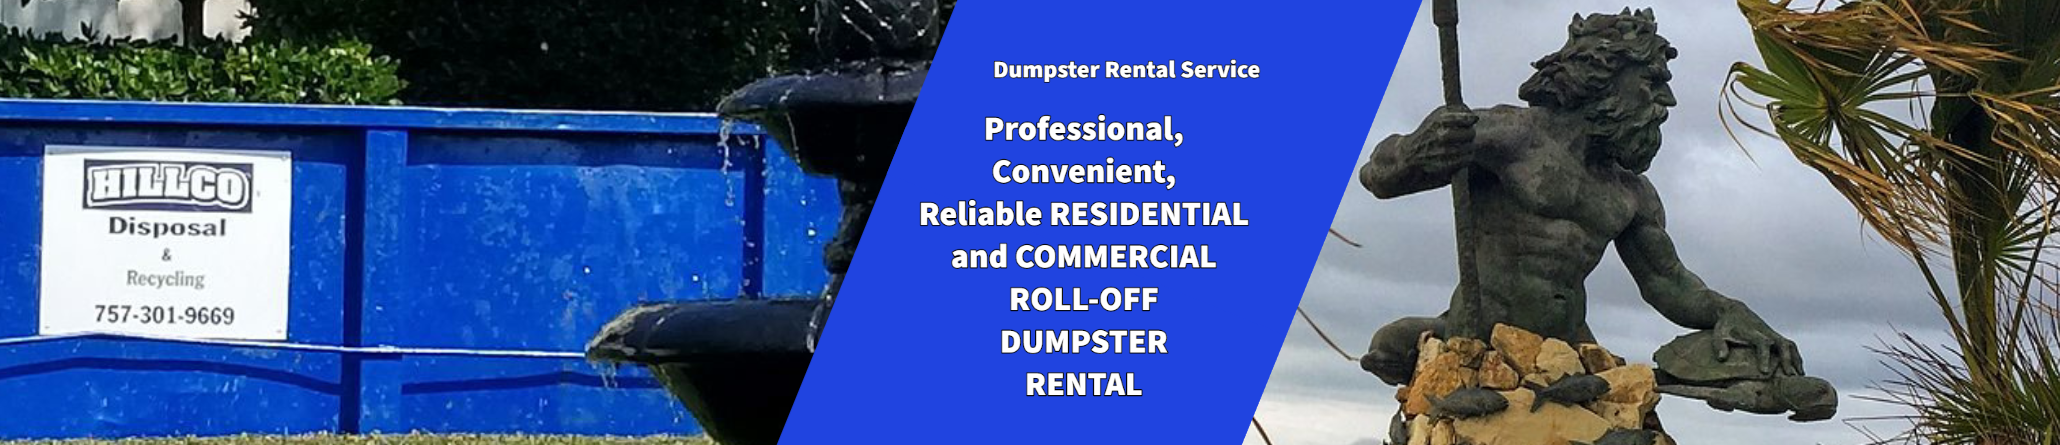 Dumpster Rental Hampton Roads